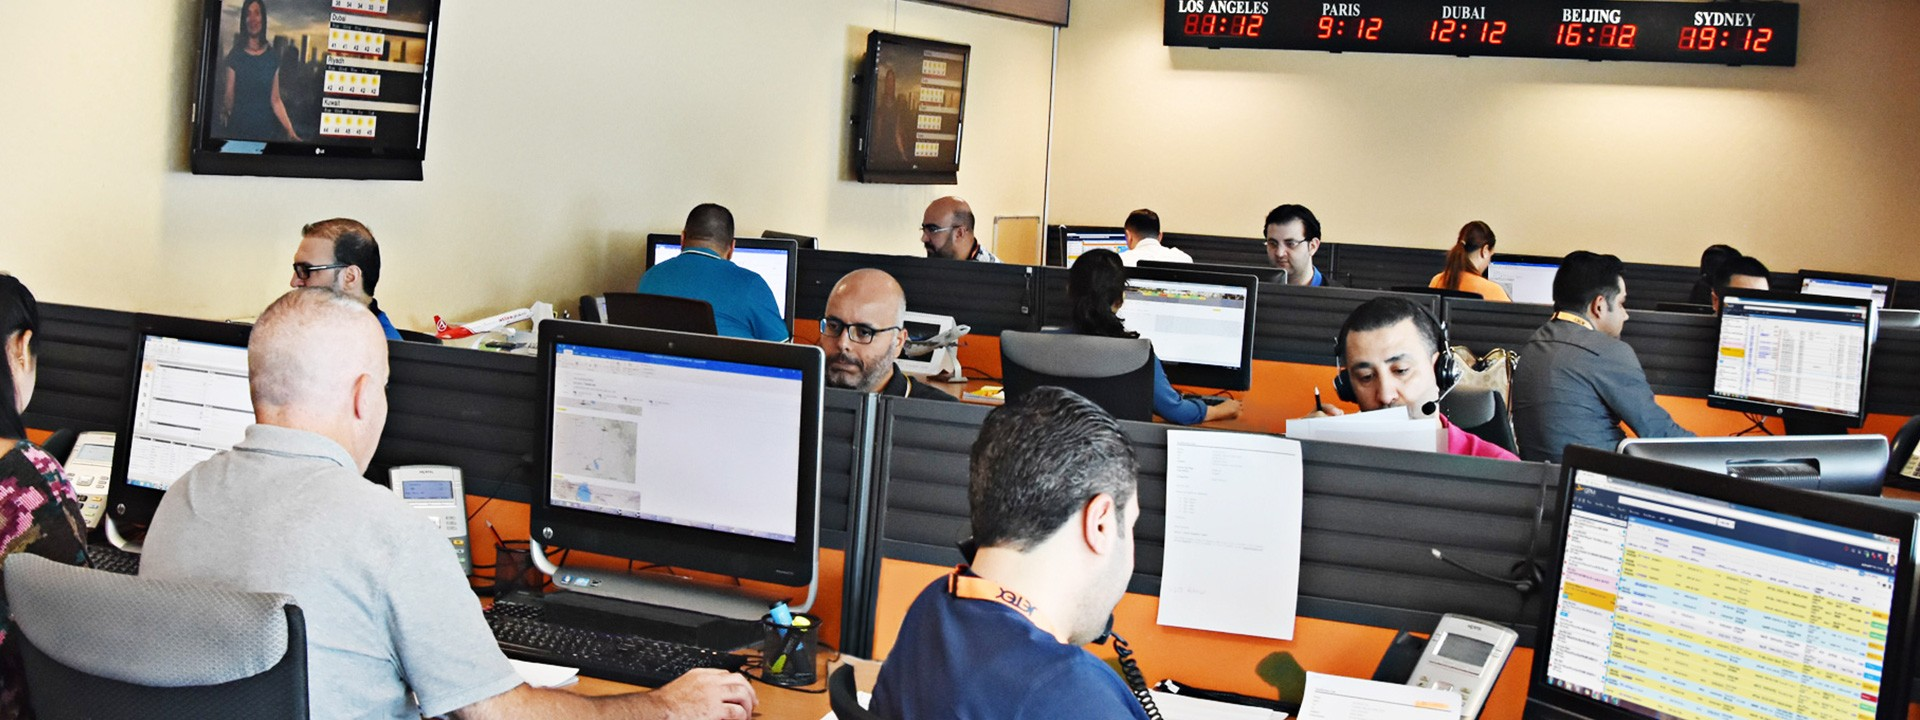 Dubai UAE Operations Center DXB OMDB